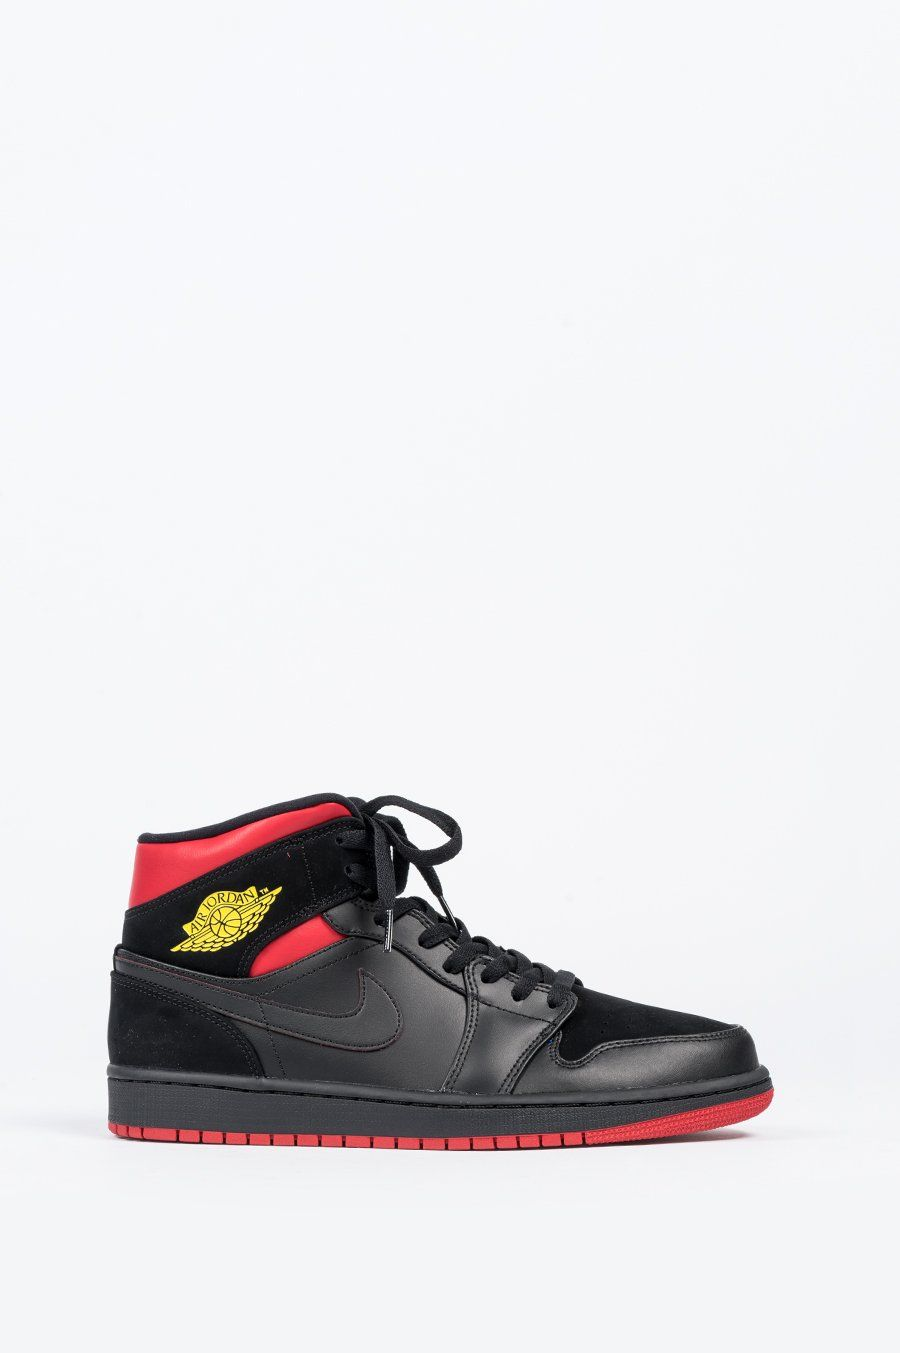 new style cf9f6 c913e NIKE AIR JORDAN 1 MID BLACK TOUR YELLOW GYM RED